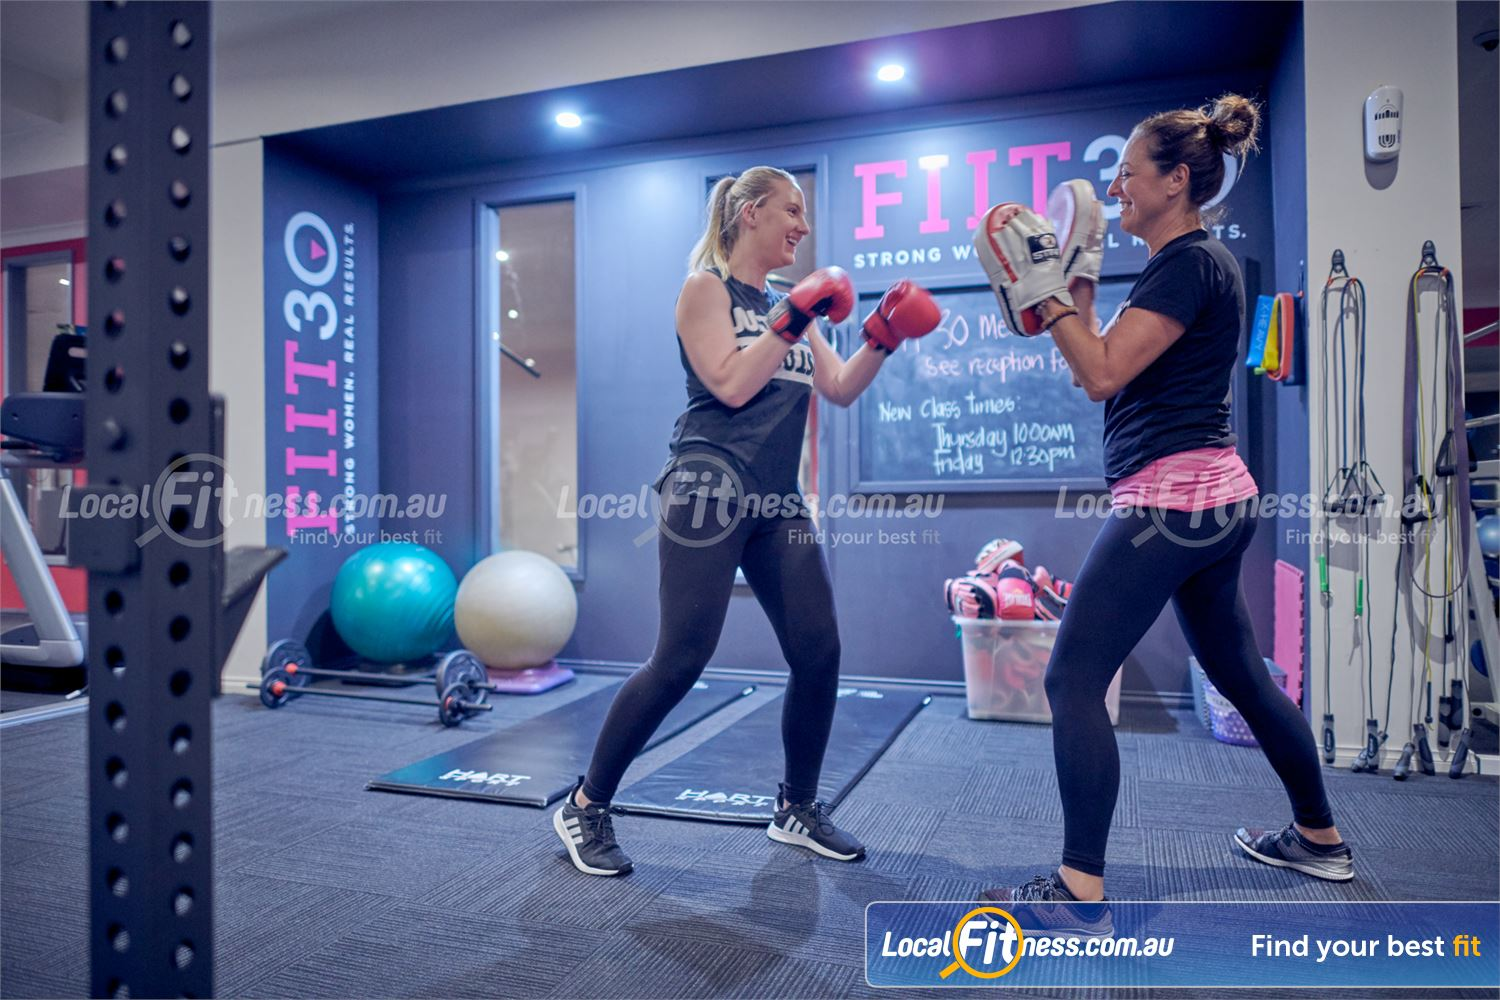 Fernwood Fitness Bulleen Fernwood FIIT 30 in Bulleen is functional training for women.